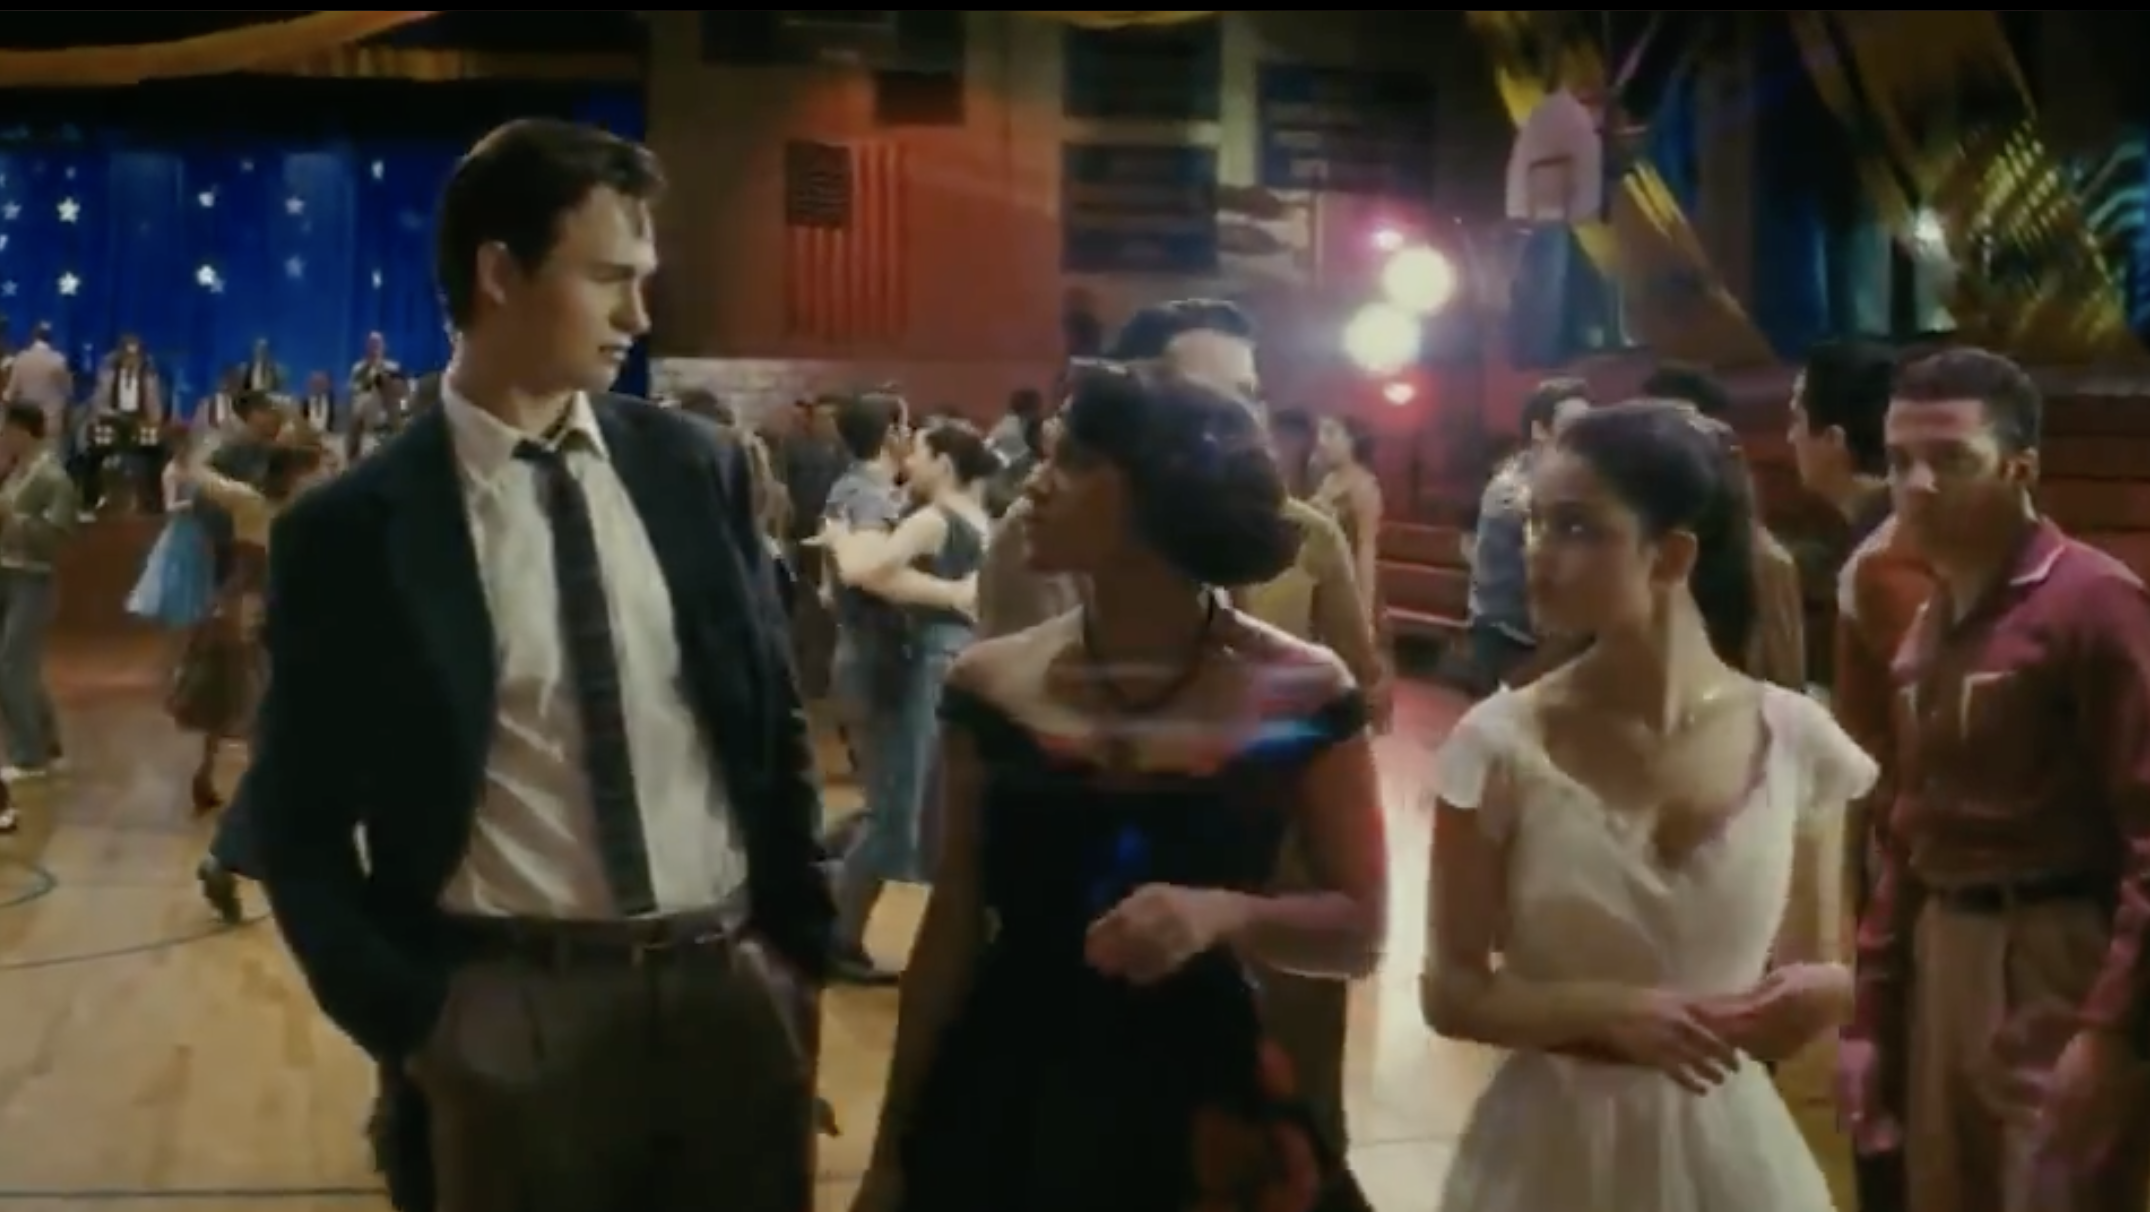 Ansel's character standing next to Maria and another woman at a dance